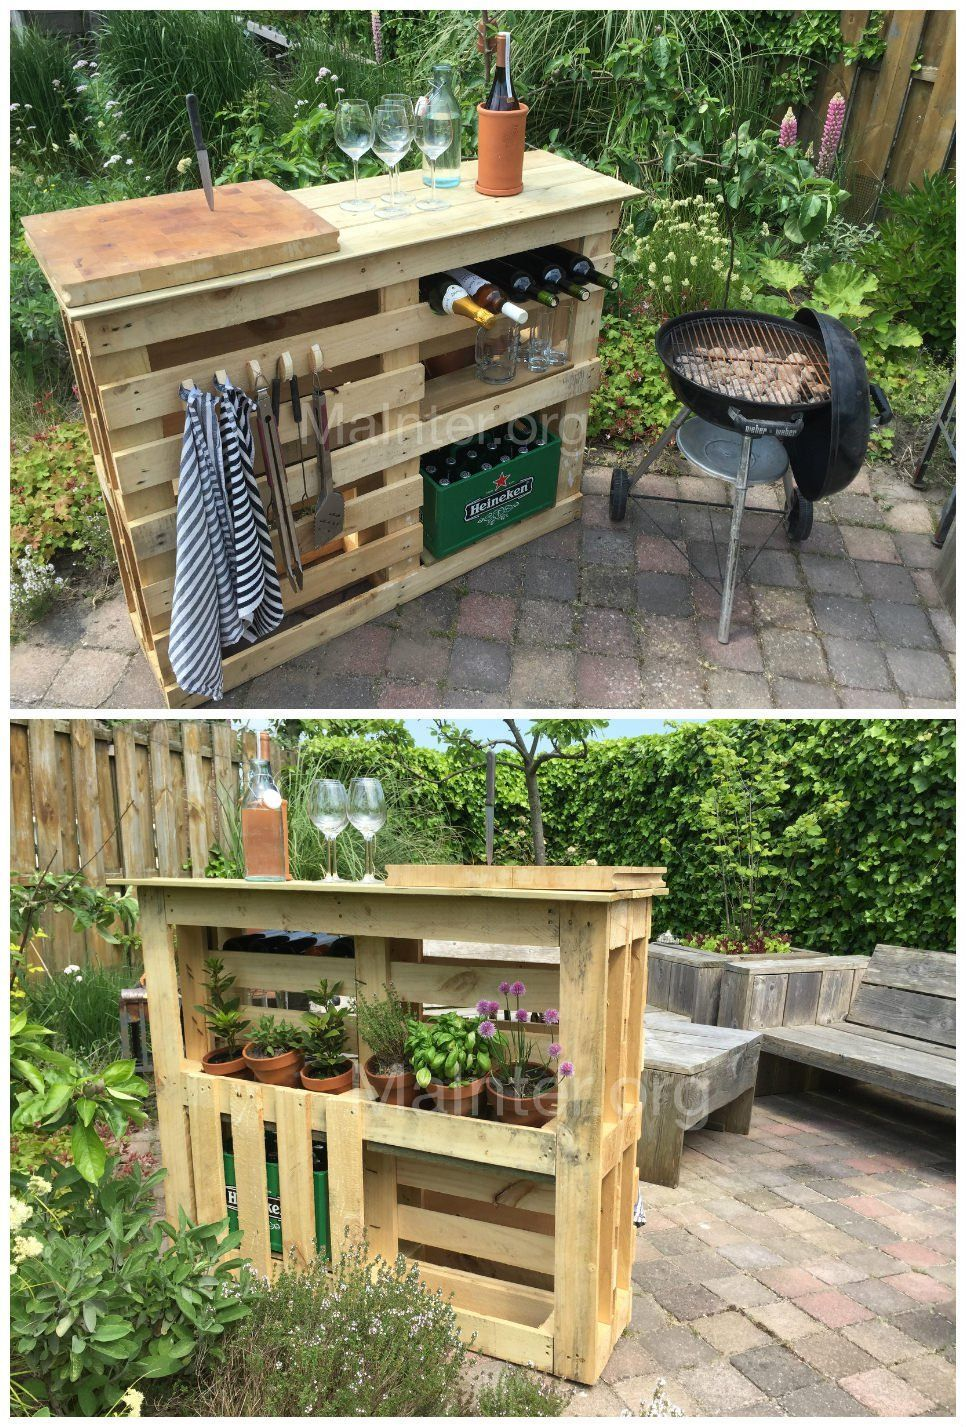 Bbq Side Table With Storage.Backyard D I Y Pallet Idea A Bbq Side Table Grill Station